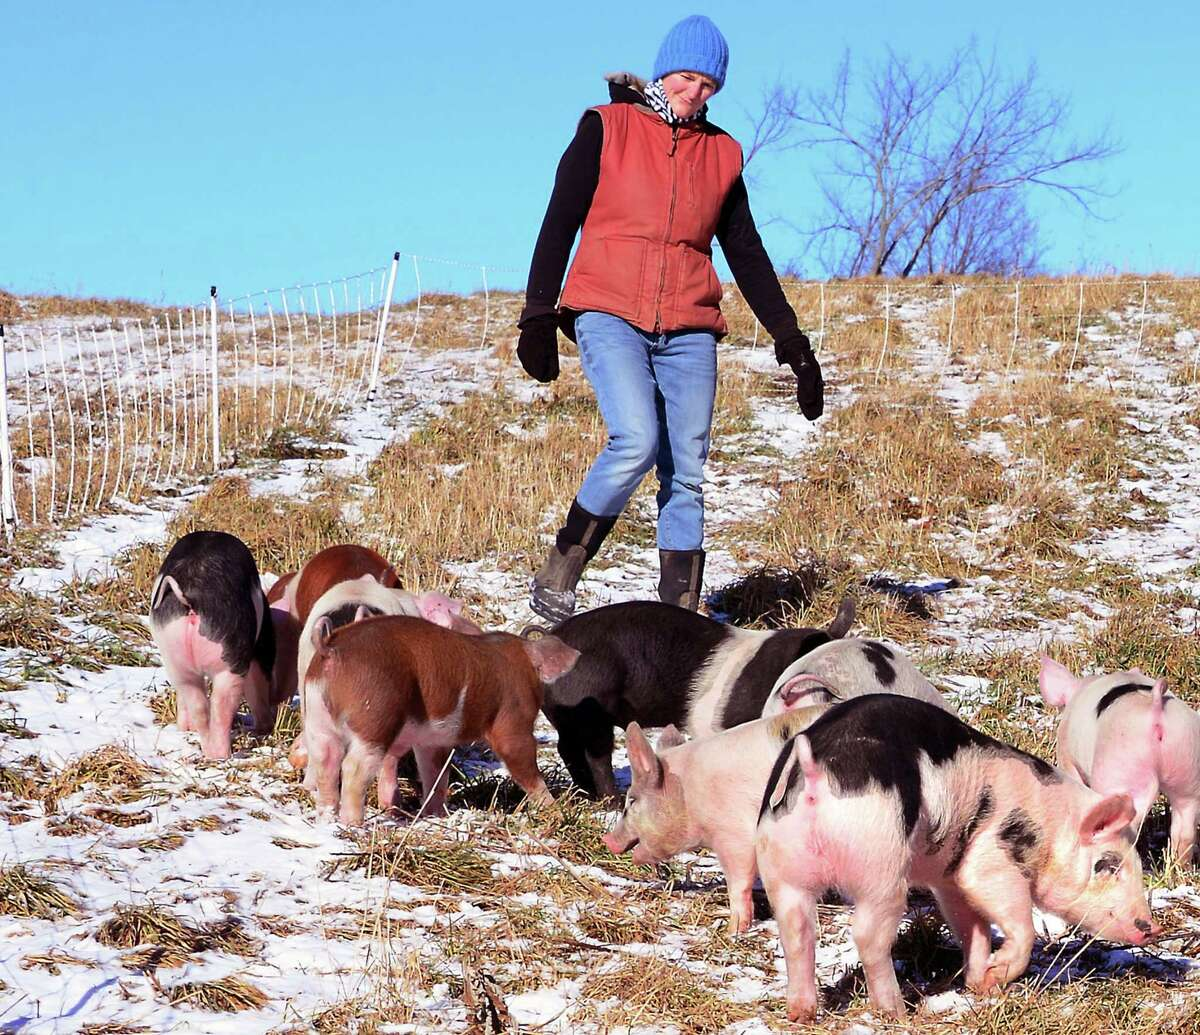 Annie Metzger with some of her pastured pigs on her Laughing Earth Farm Thursday Dec. 14, 2017 in Cropseyville, NY. (John Carl D'Annibale / Times Union)